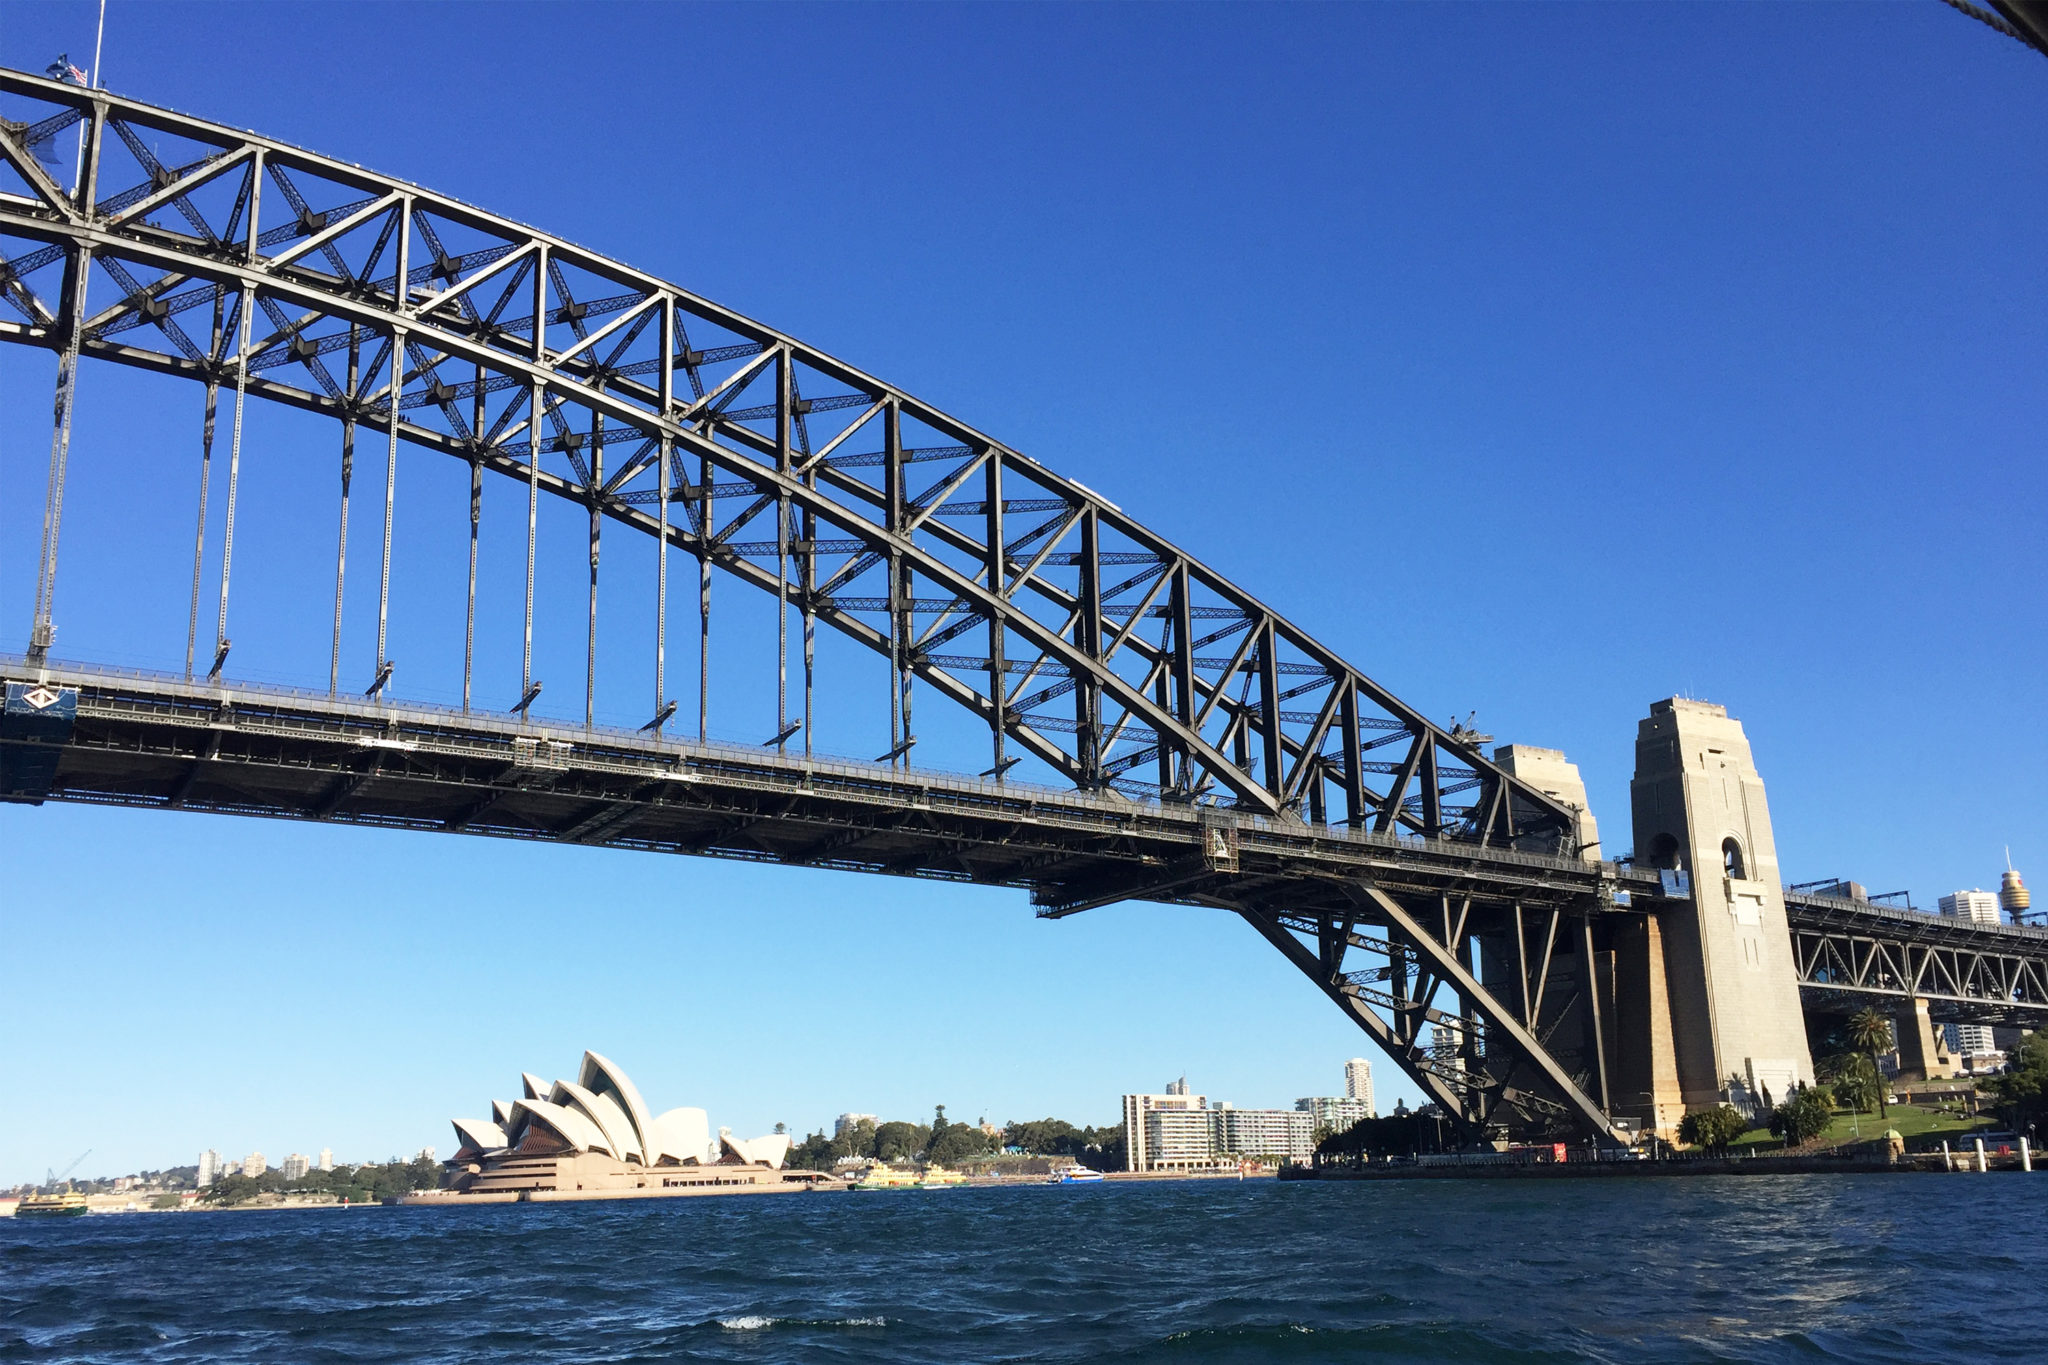 Sydney Harbour boat Cruise with Lunch